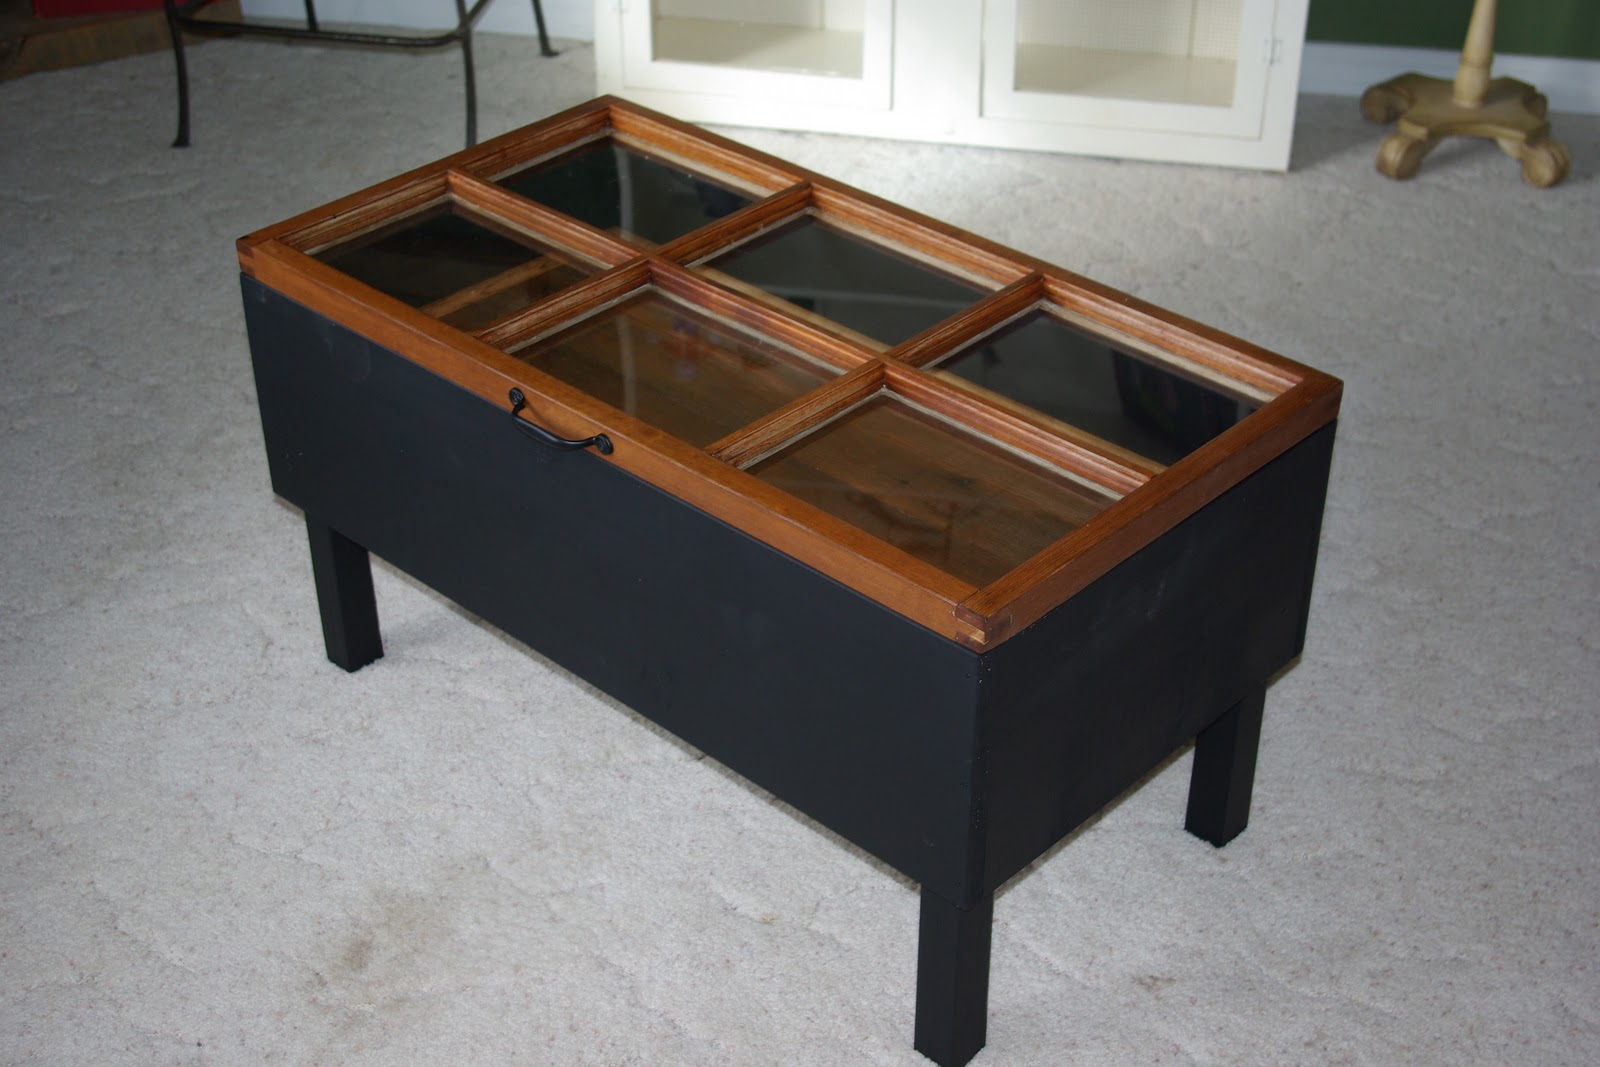 Hinged Window Coffee Table